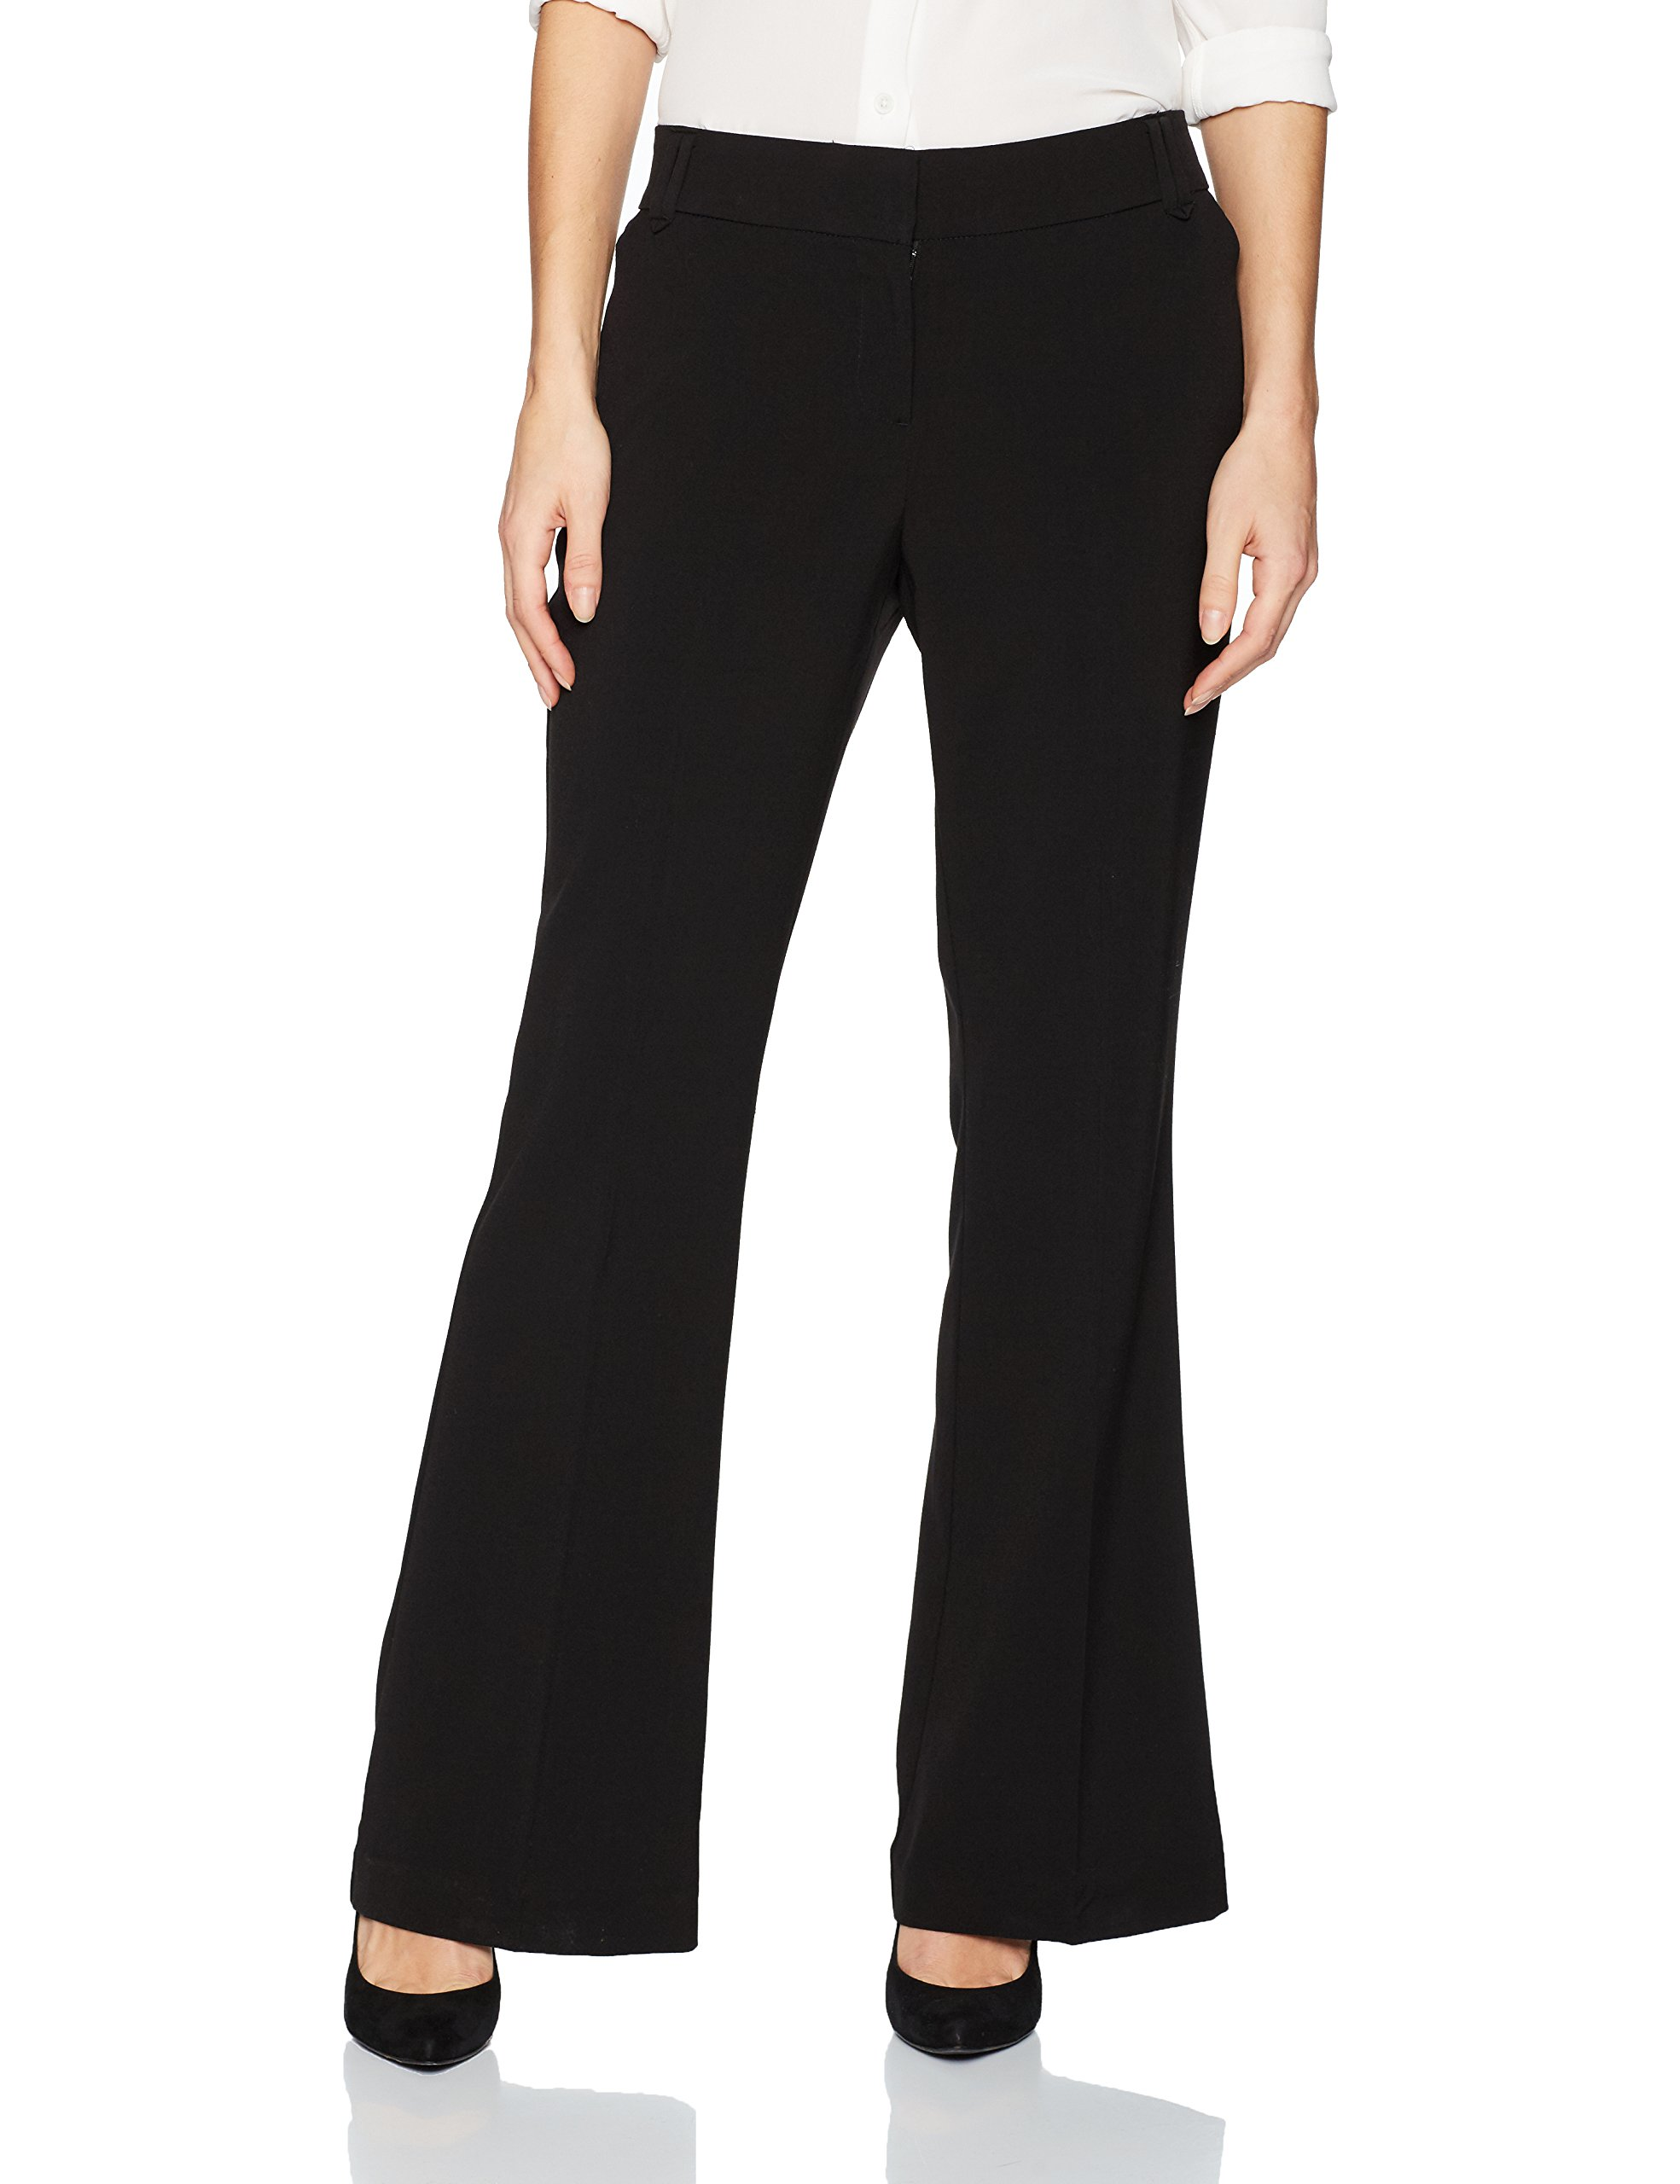 d30ecfe008 Briggs NEW Black Women s Size 14X31 Bootcut Solid Dress Pants Stretch -  Walmart.com